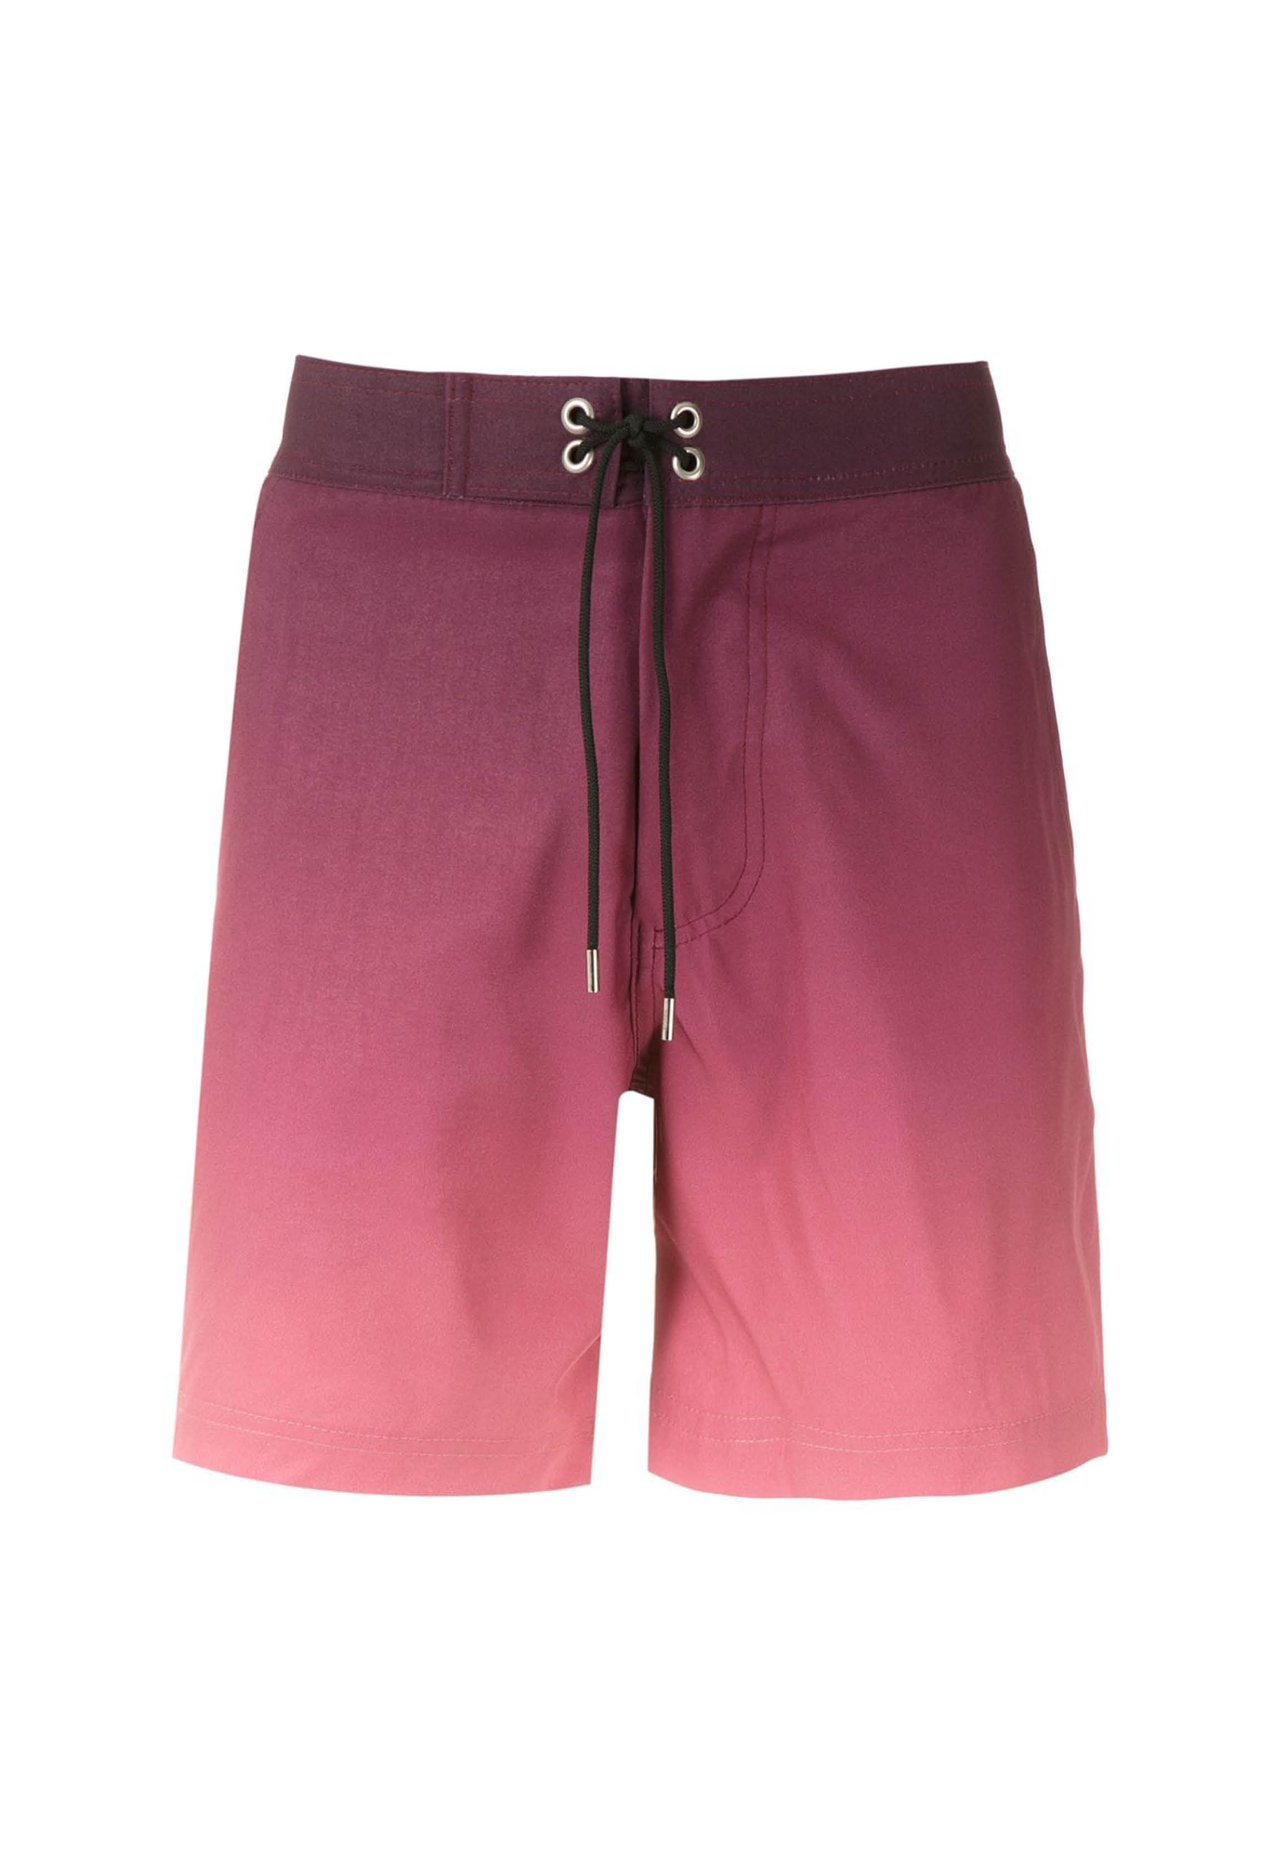 Shorts Surf Degradê